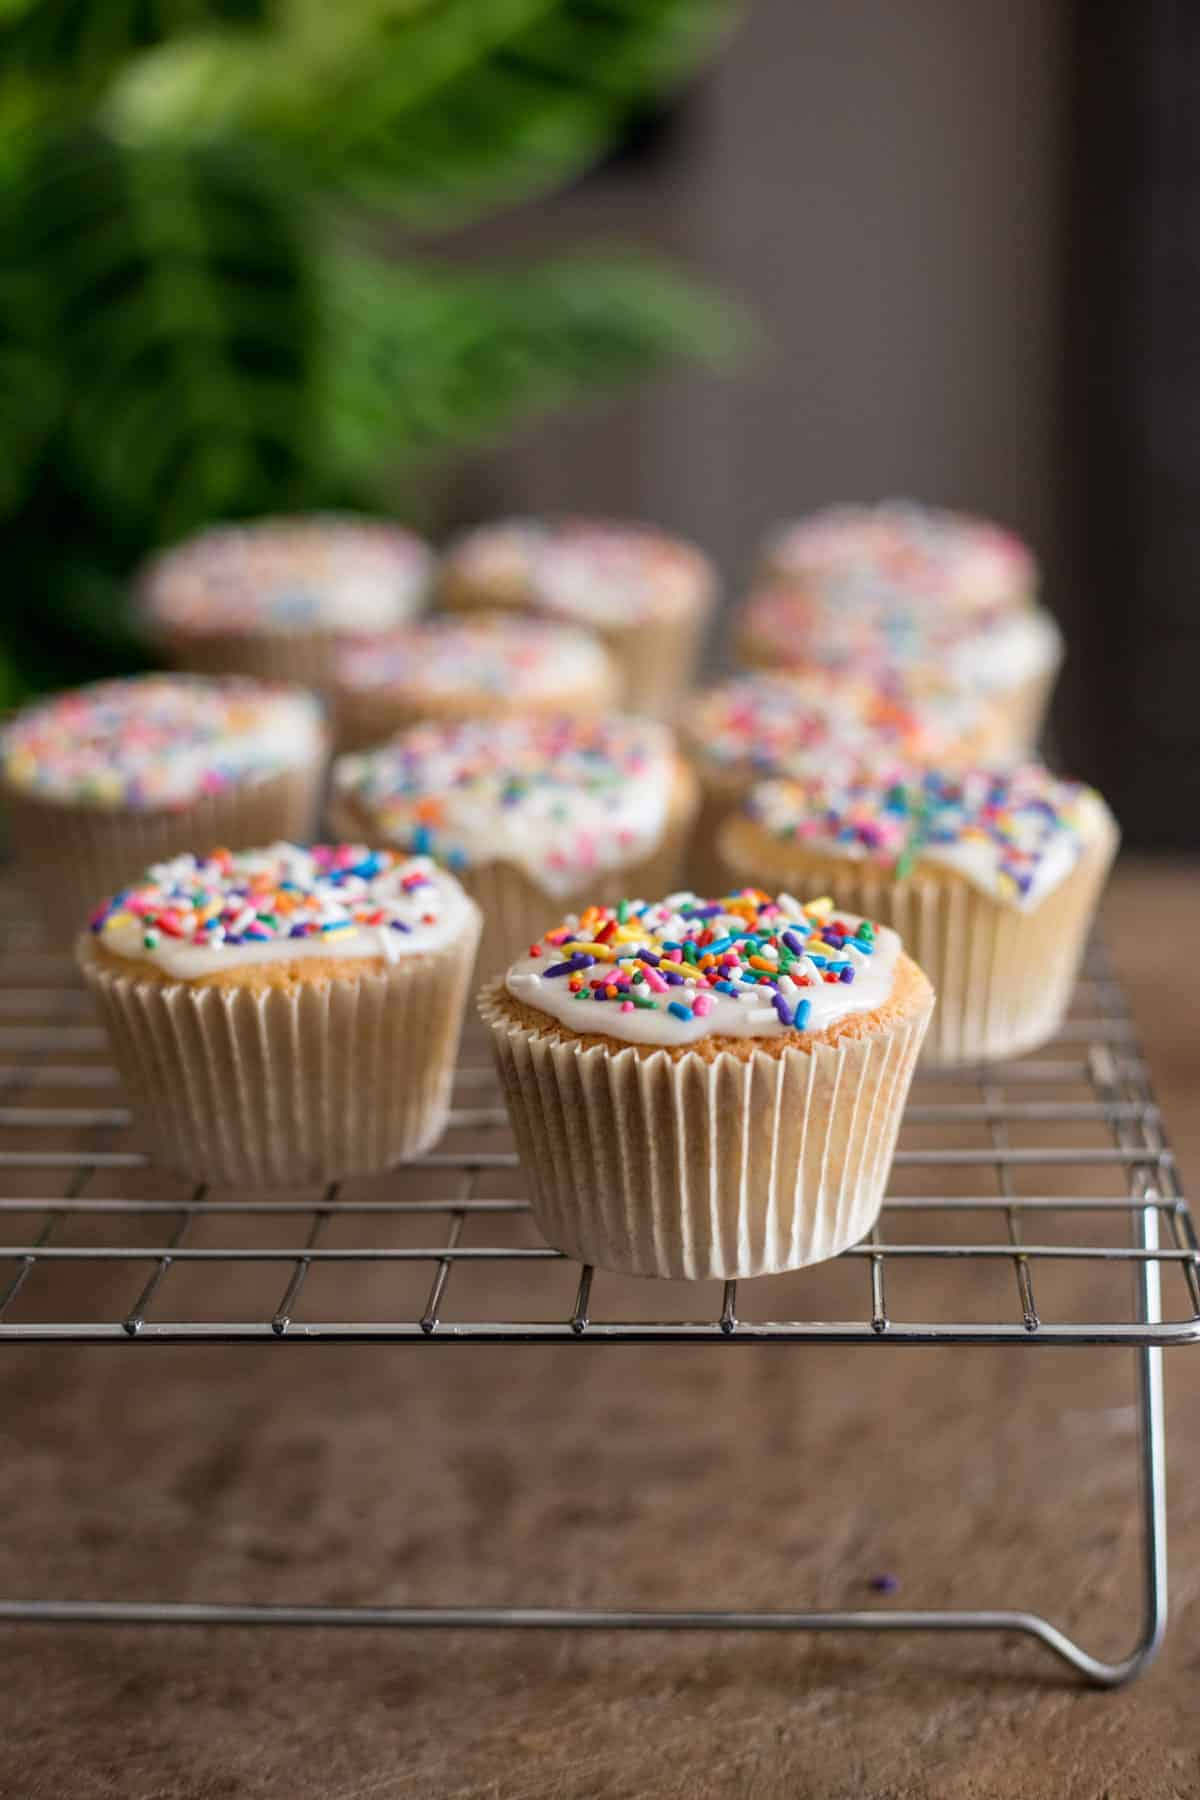 fairy cakes on a cooling rack